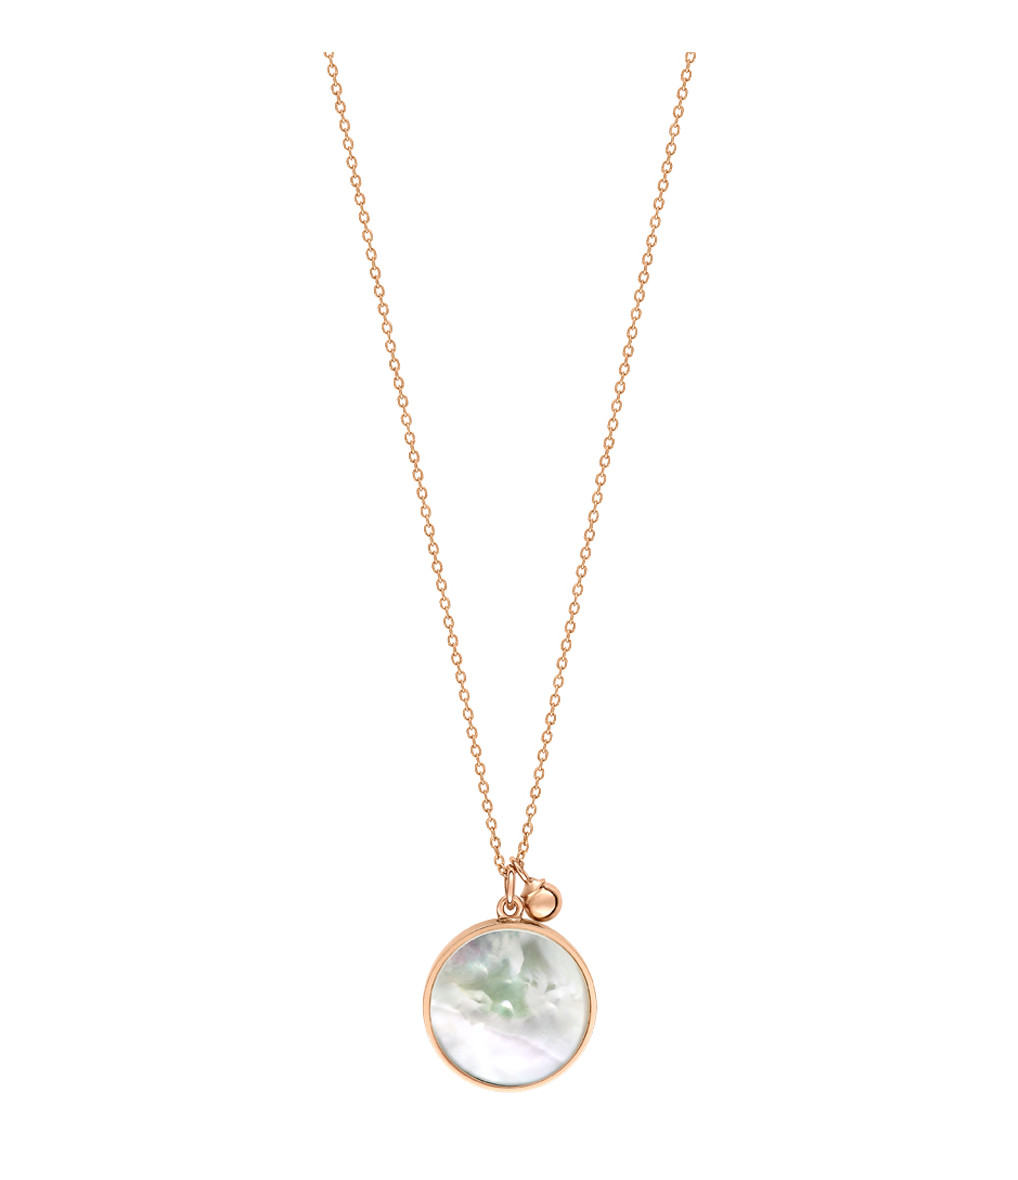 GINETTE_NY - Collier Maria Disc Perle